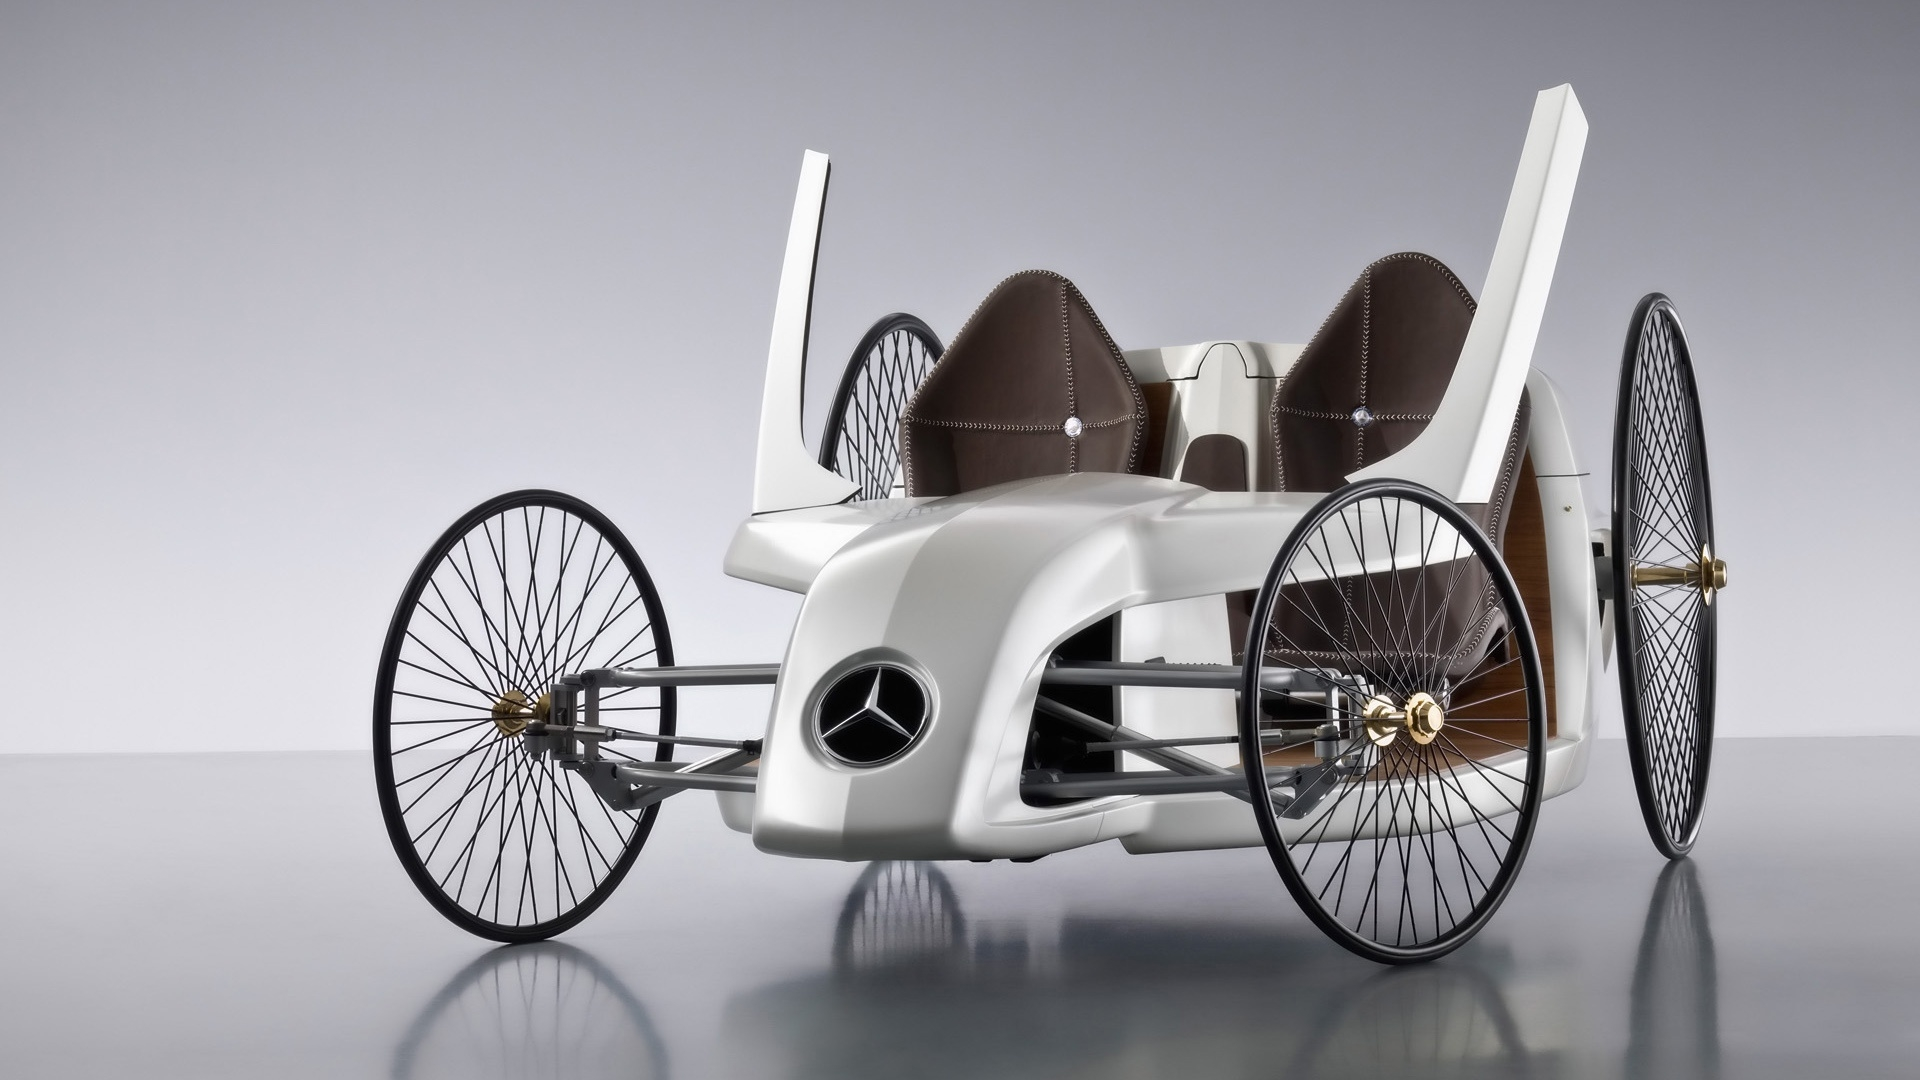 Mercedes Benz F CELL Roadster for 1920 x 1080 HDTV 1080p resolution